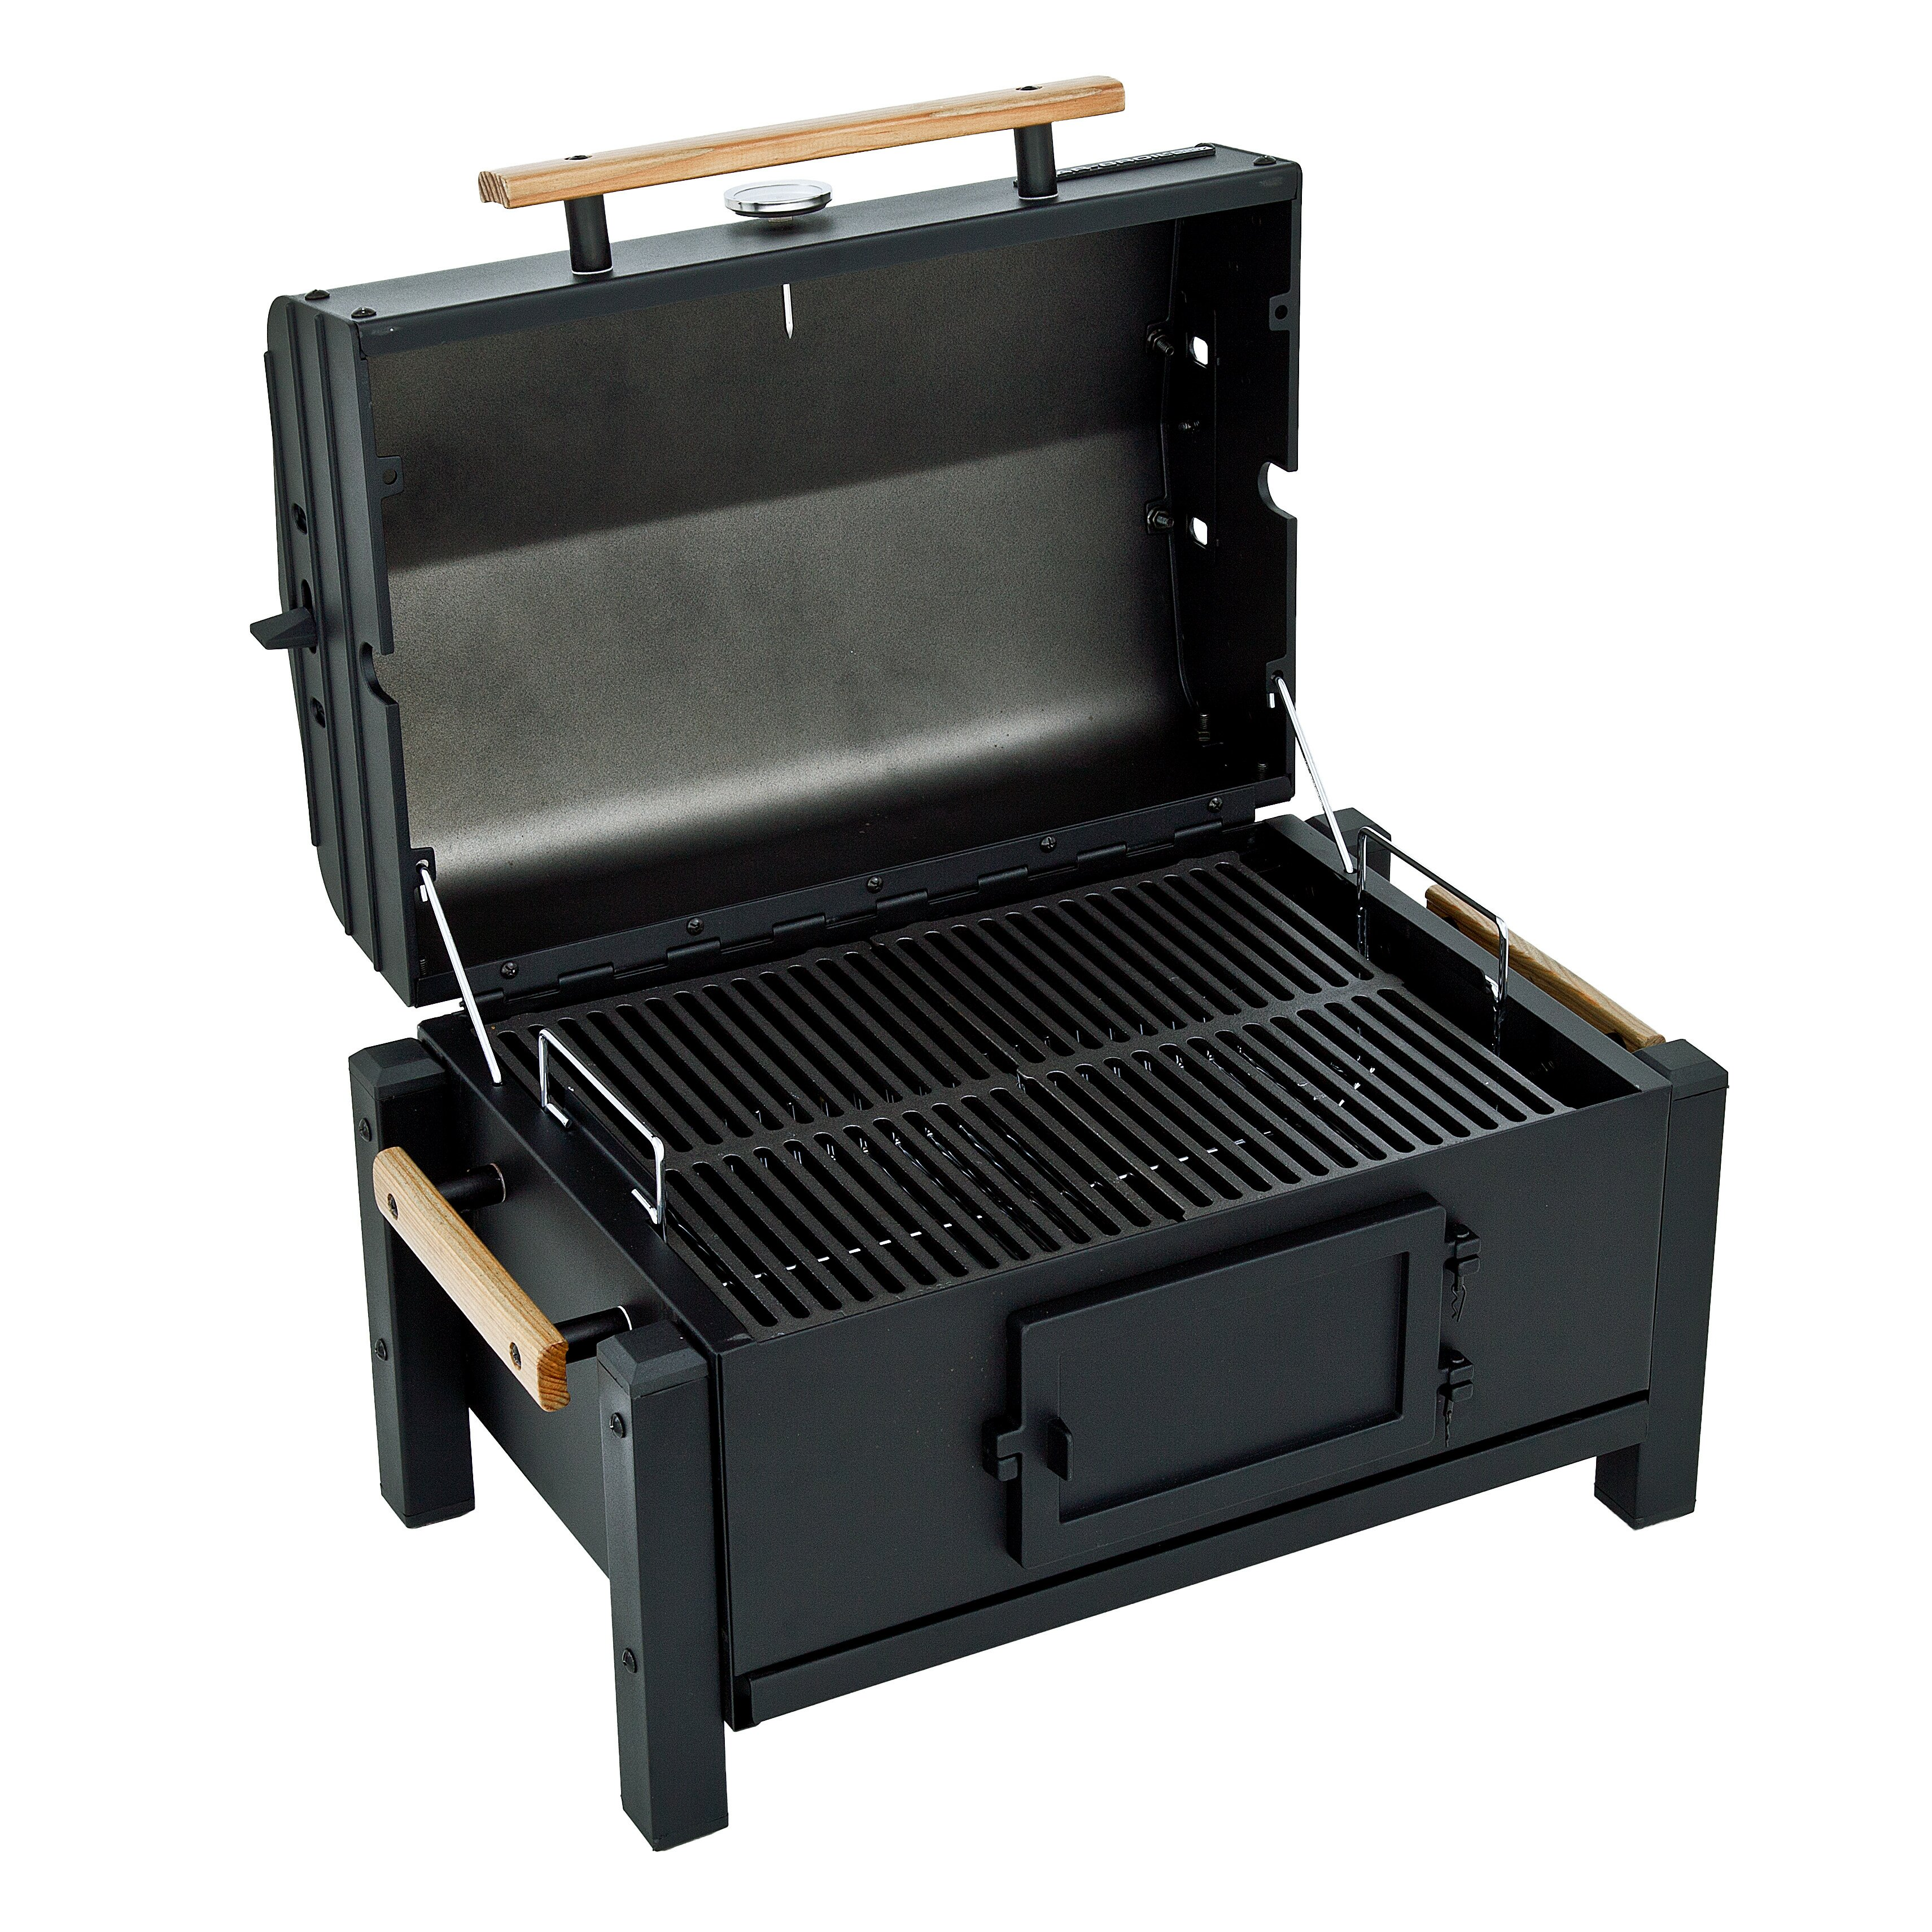 Charbroil Cb500x Portable Charcoal Tabletop Grill